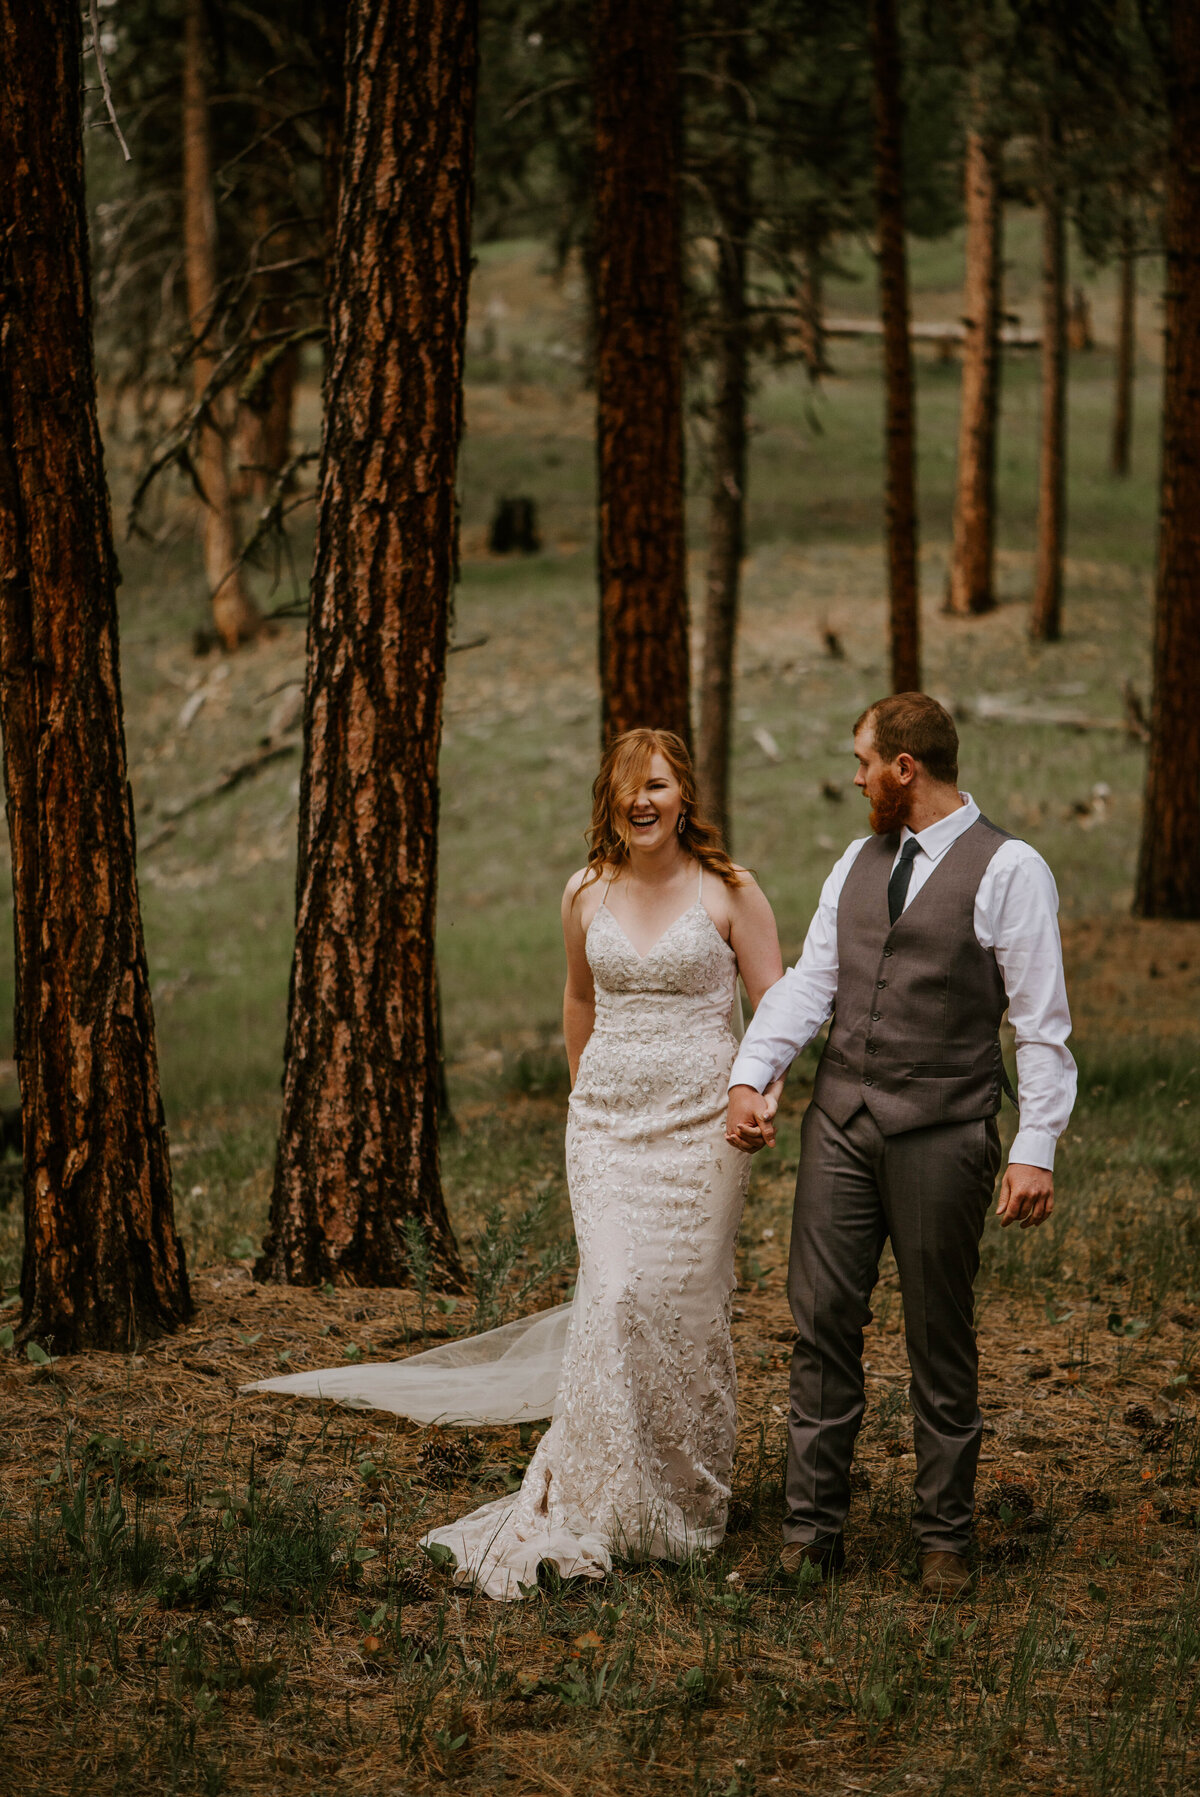 ochoco-forest-central-oregon-elopement-pnw-woods-wedding-covid-bend-photographer-inspiration2900